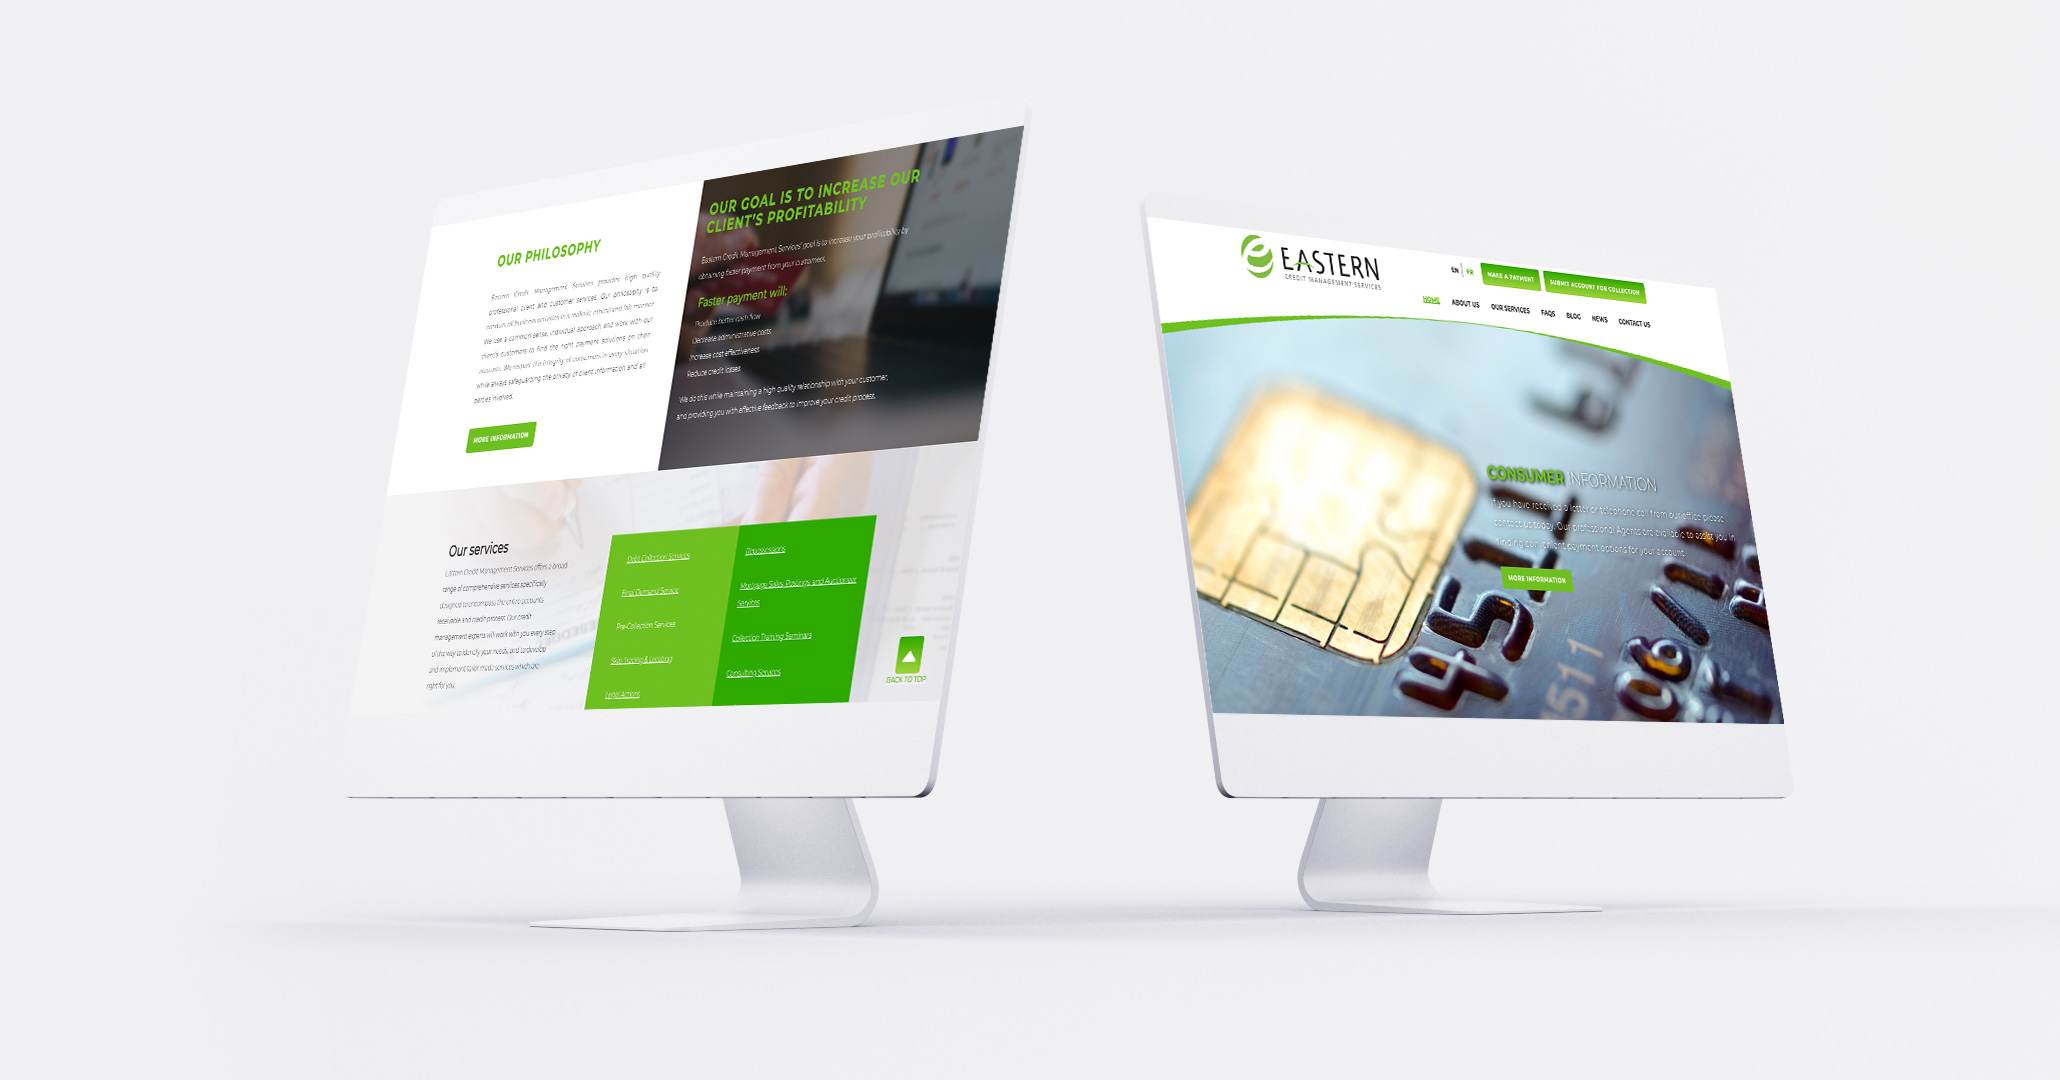 Eastern Credit website on two computers